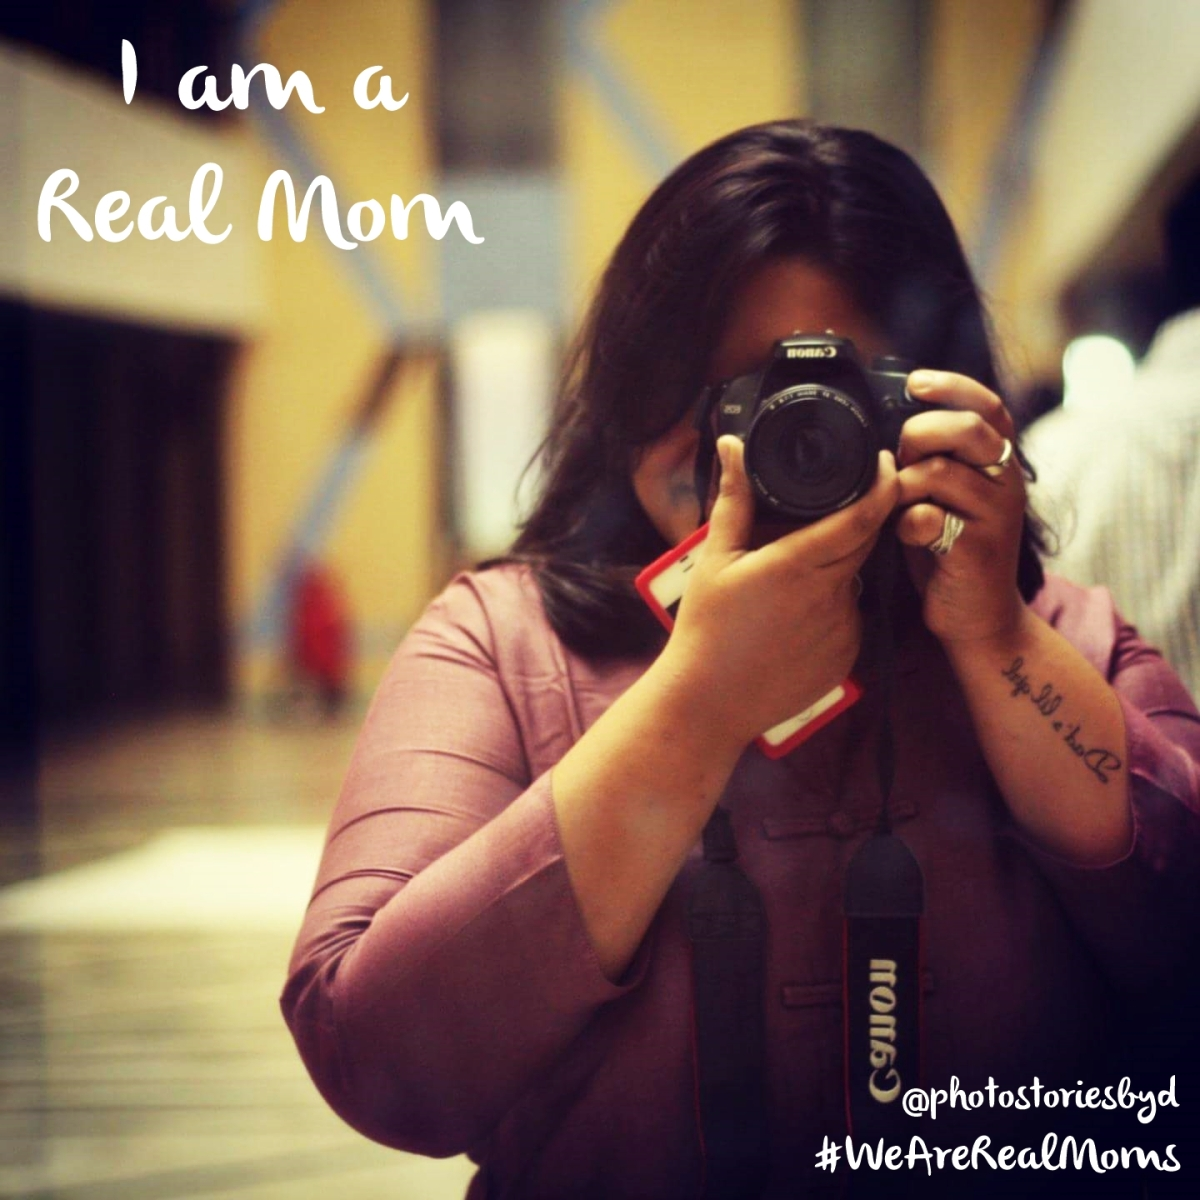 Real Mom | Disha of PhotostoriesbyD